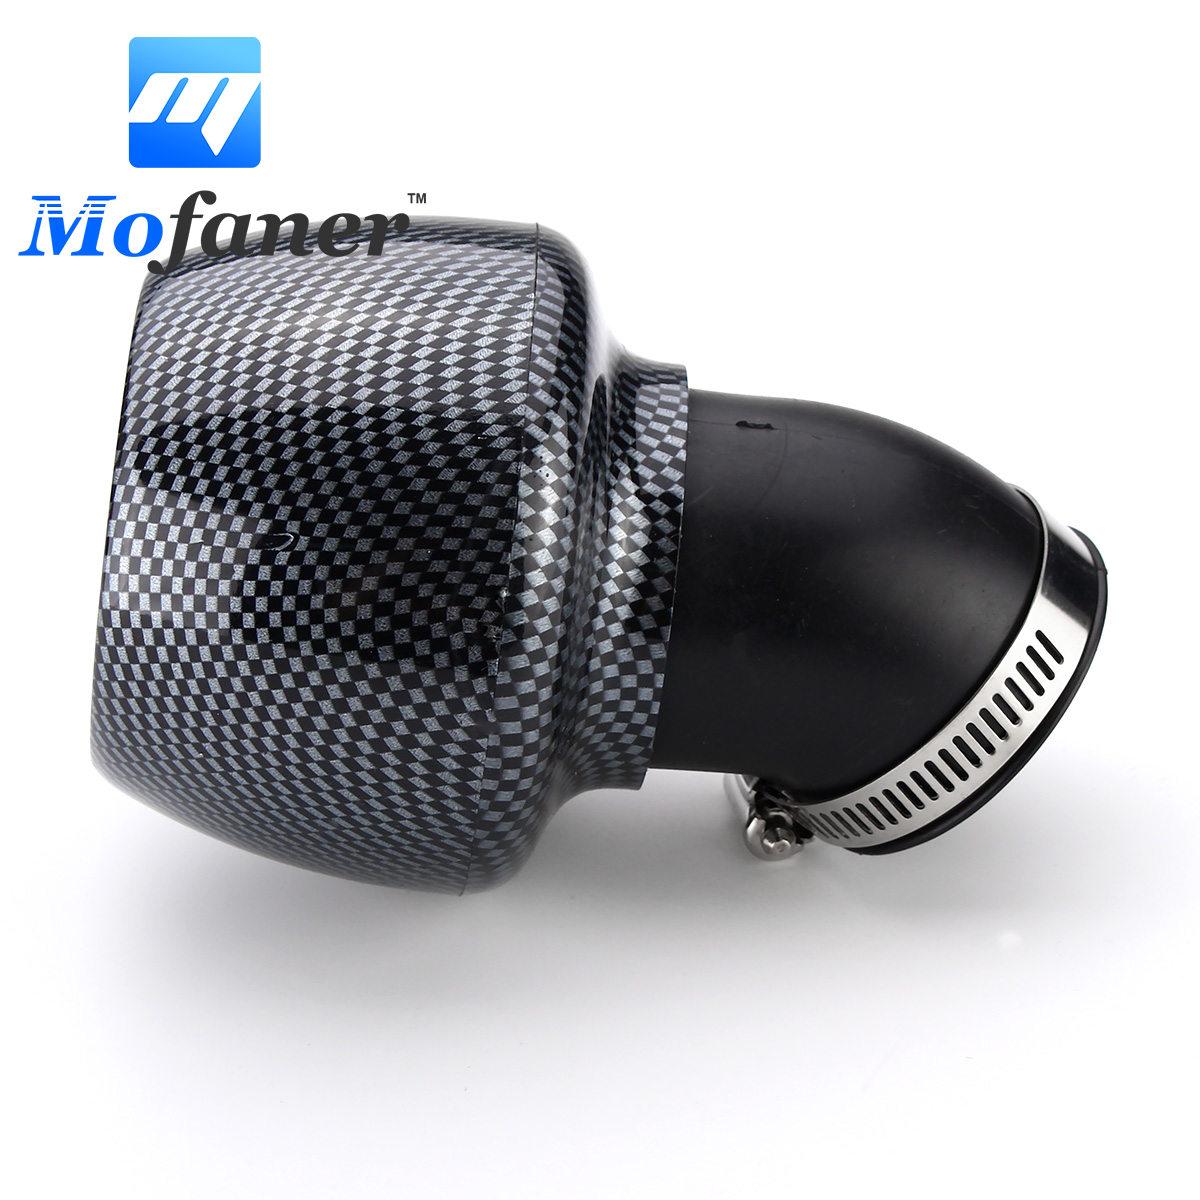 42mm Motorcycle Air Filter Carbon Fibre For 150cc 250cc ATV Quad Moped Scooter Go kart42mm Motorcycle Air Filter Carbon Fibre For 150cc 250cc ATV Quad Moped Scooter Go kart